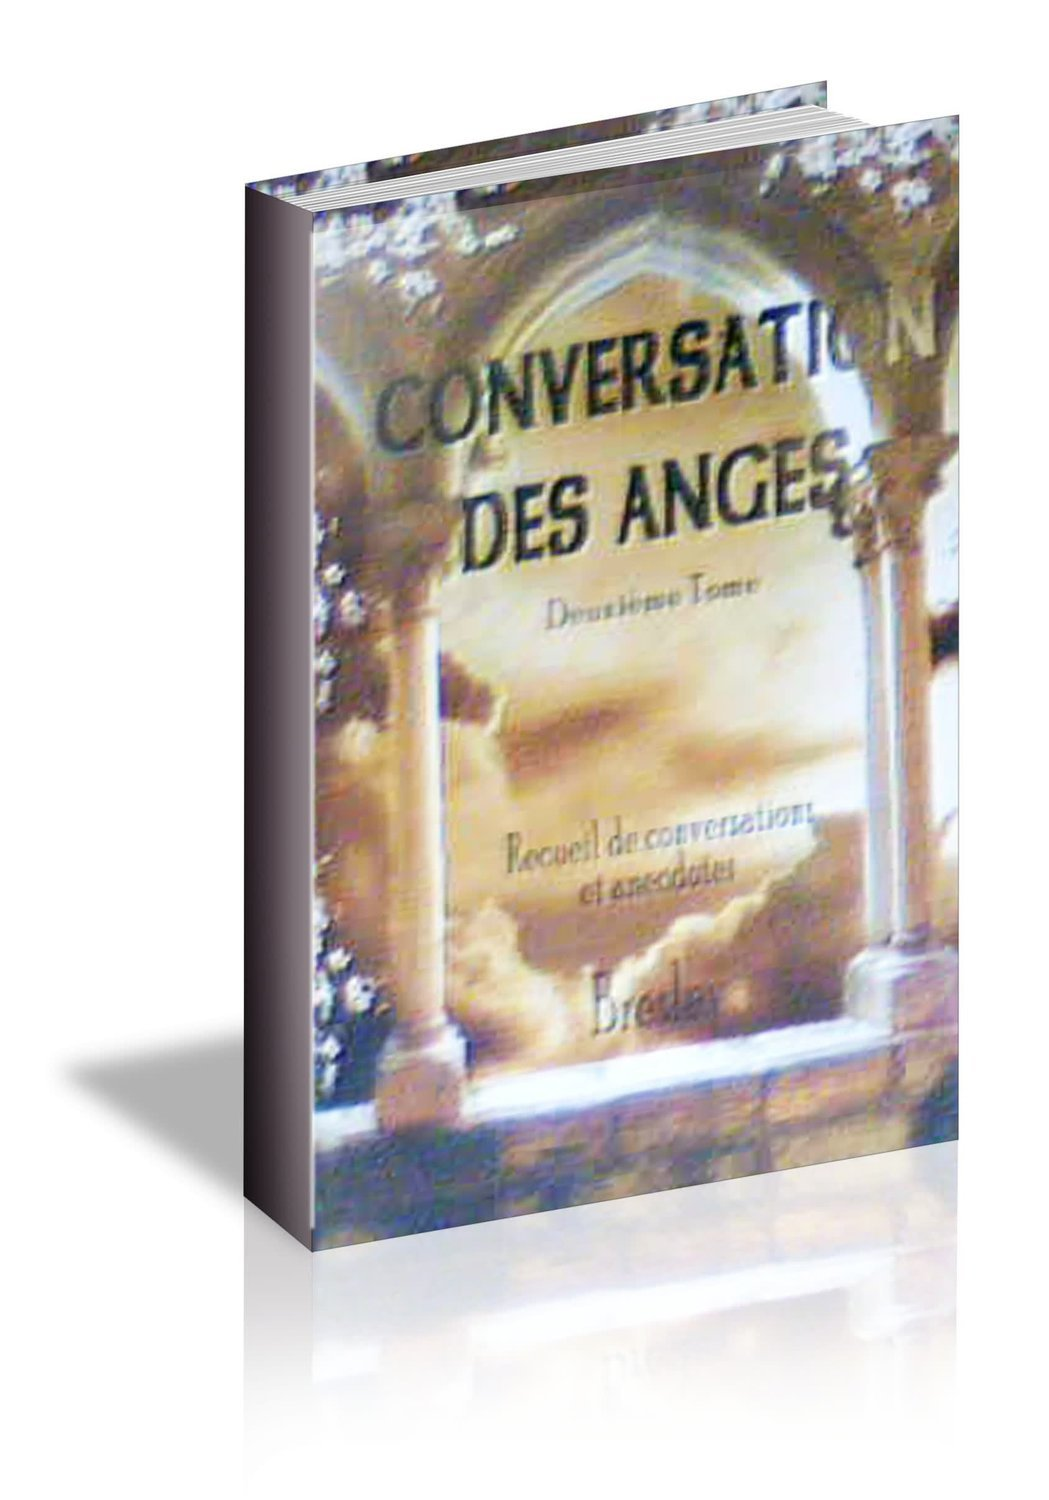 Conversation des anges Thome2